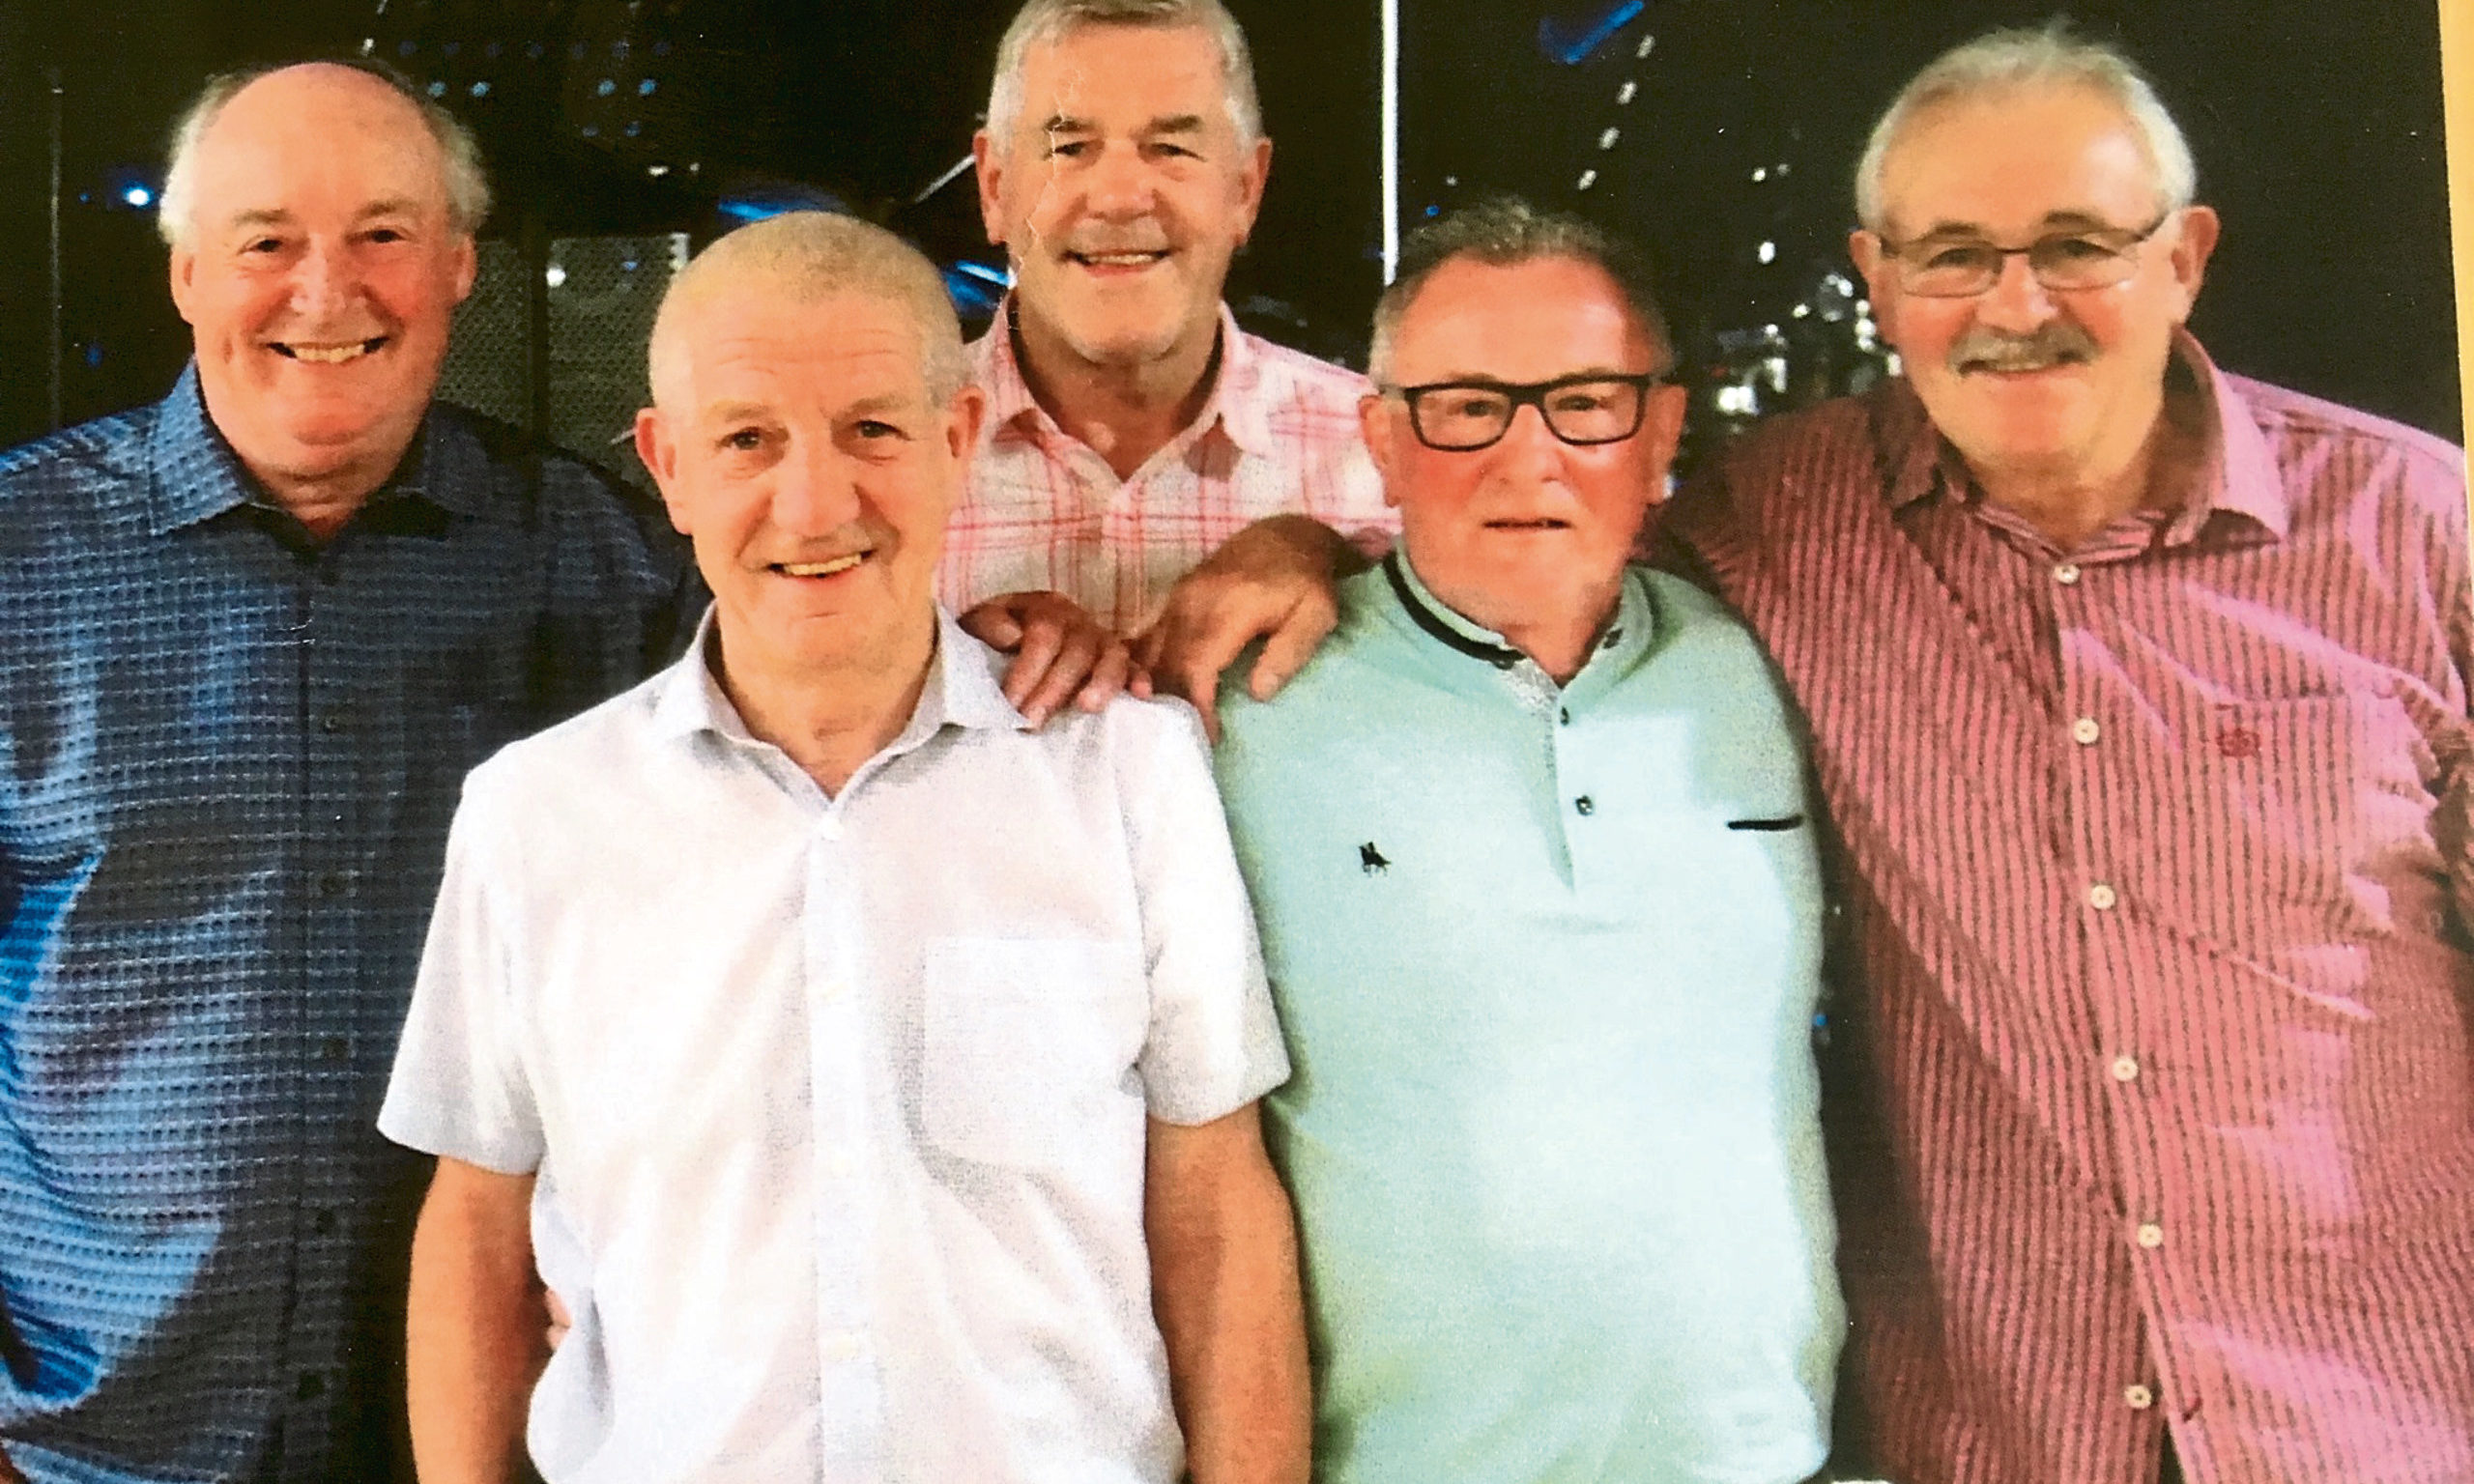 From left - Dode Watt, Willie Fraser, David 'Skip' Wright, Stan McAnearney, Dennis Elder. Pic taken in Dee Club, Lochee, Dundee.